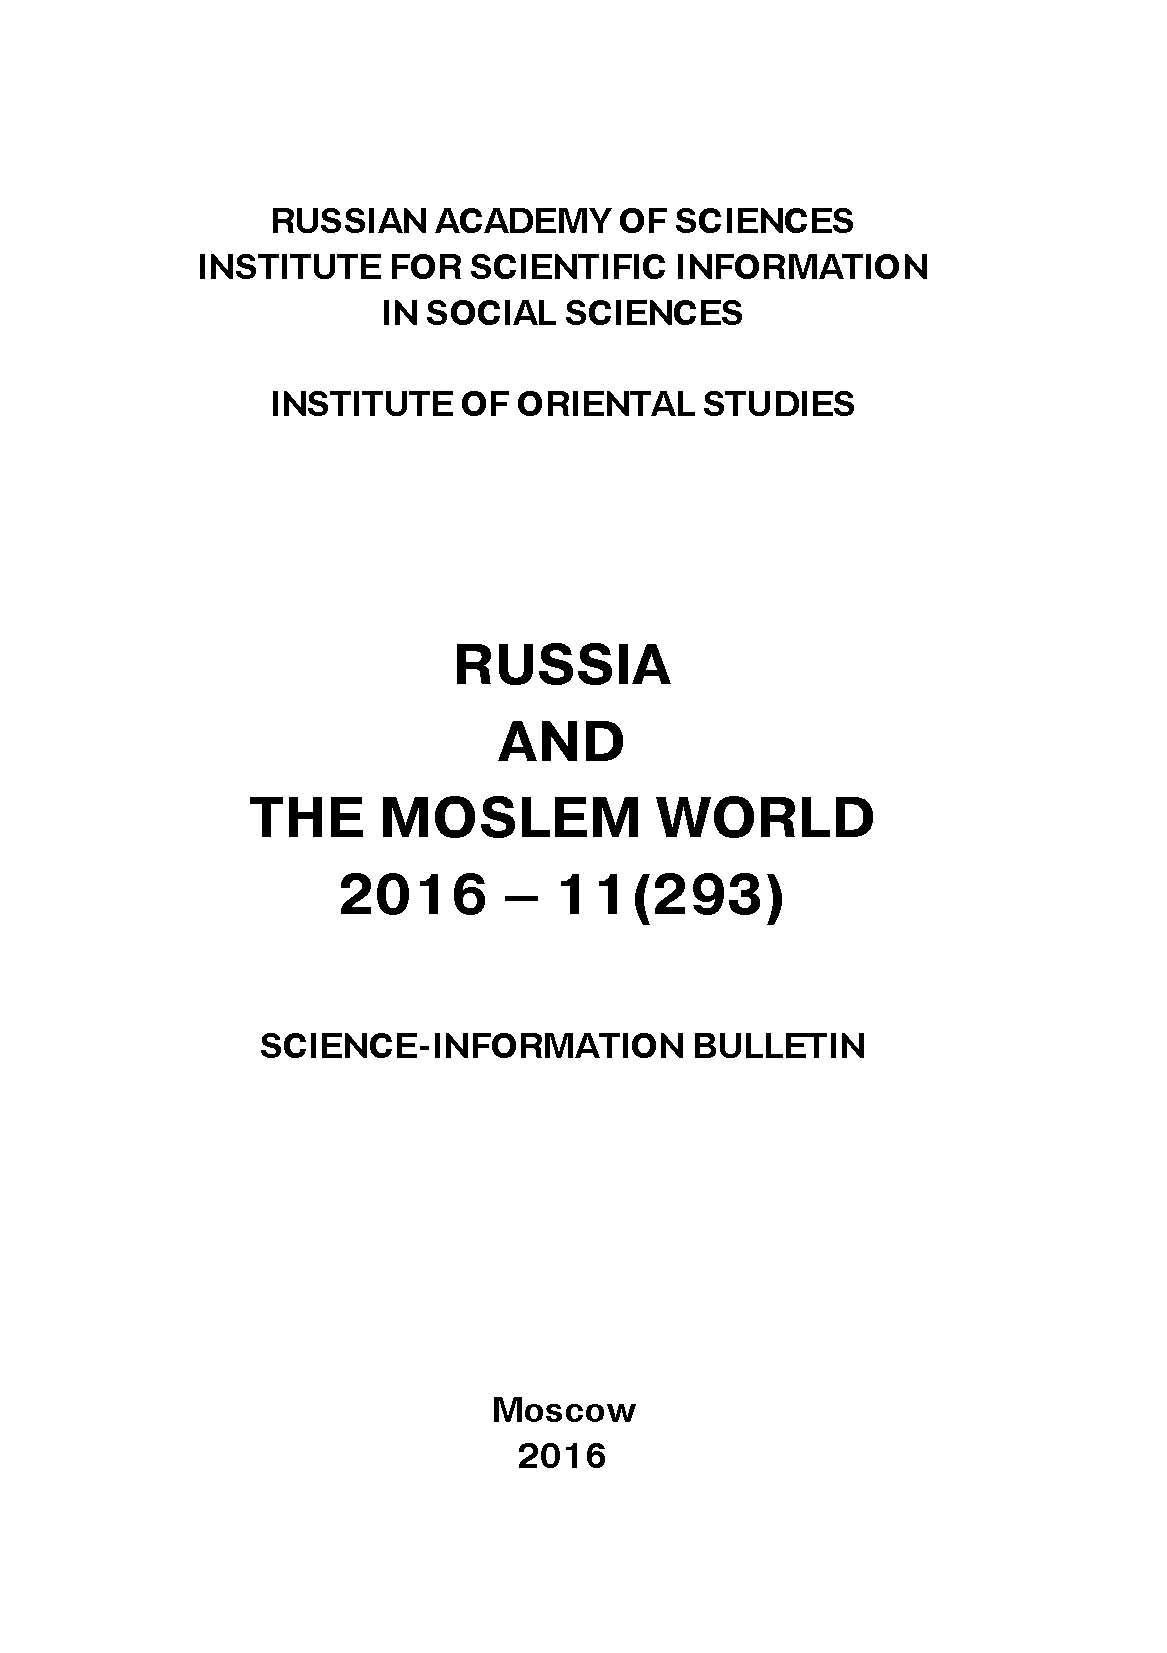 Сборник статей Russia and the Moslem World № 11 / 2016 сборник статей russia and the moslem world 05 2016